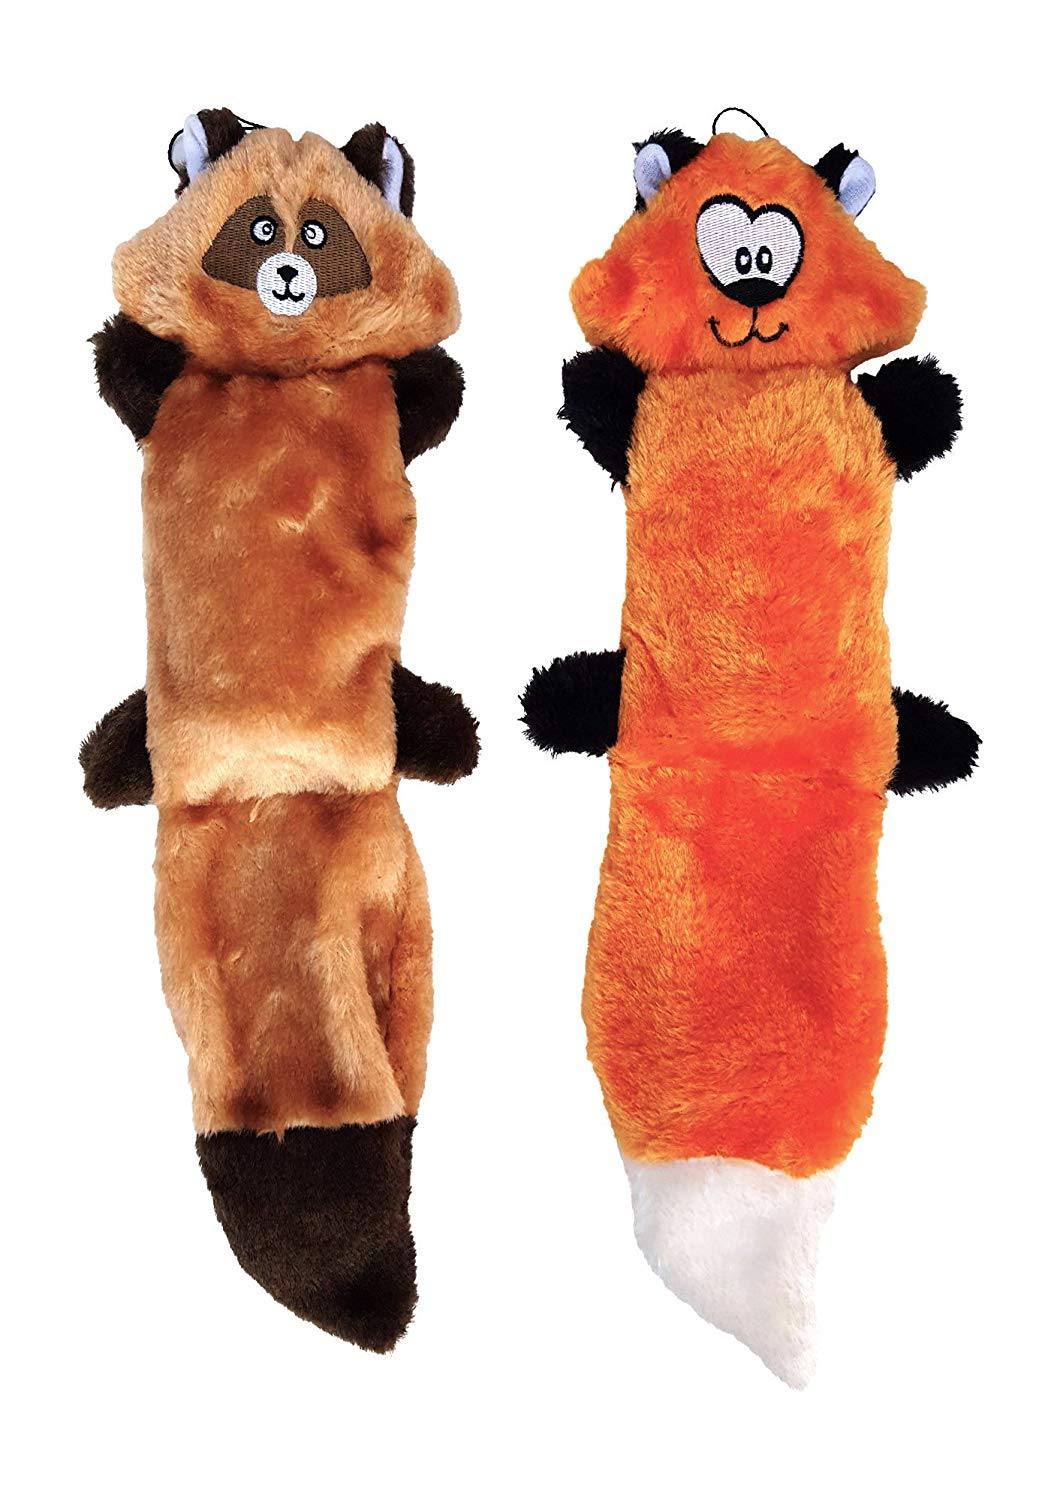 ZippyPaws Bundle of 2 Plush Dog Toys, With Squeakers, No Stuffing, Full Sized Fox and Raccoon Set